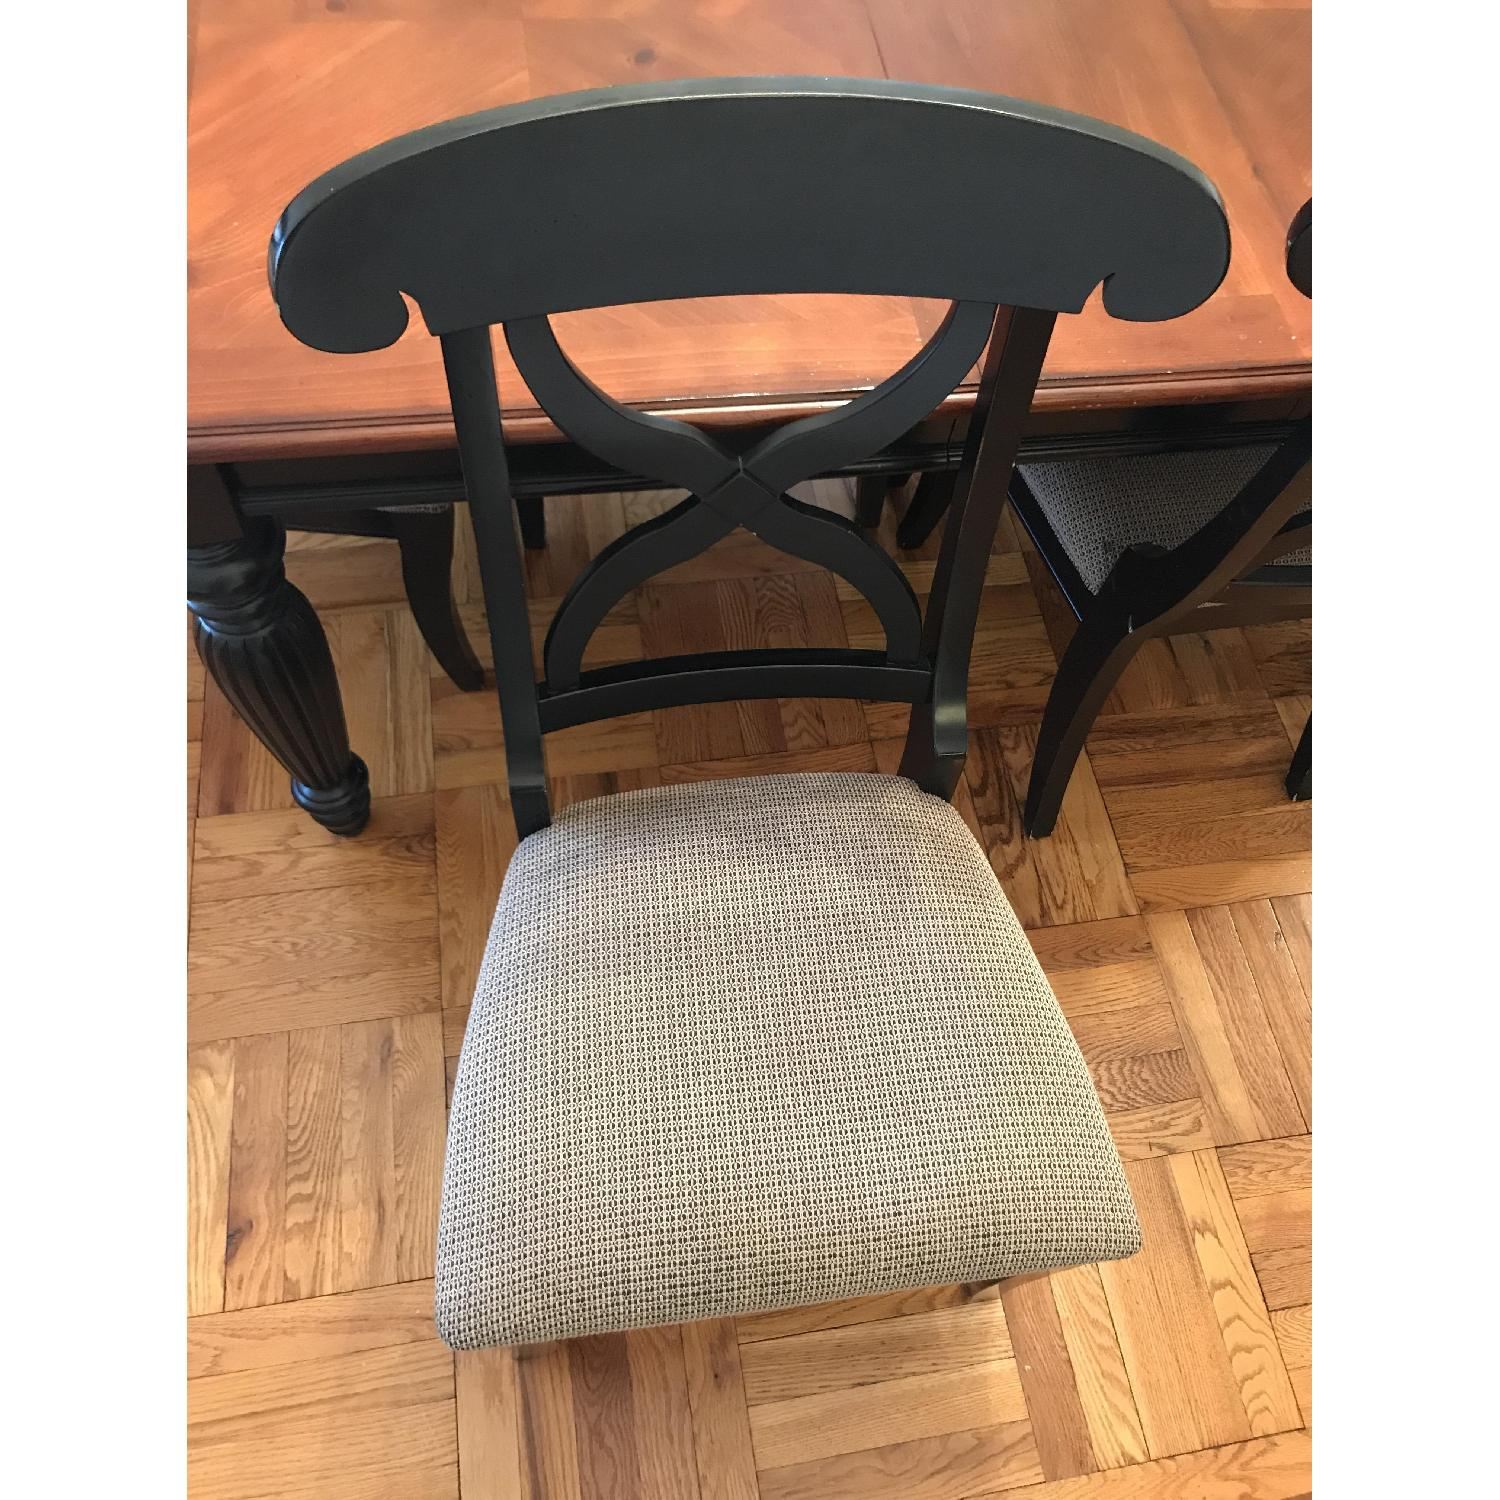 Brown/Black Wood Dining Table w/ 6 Chairs-4